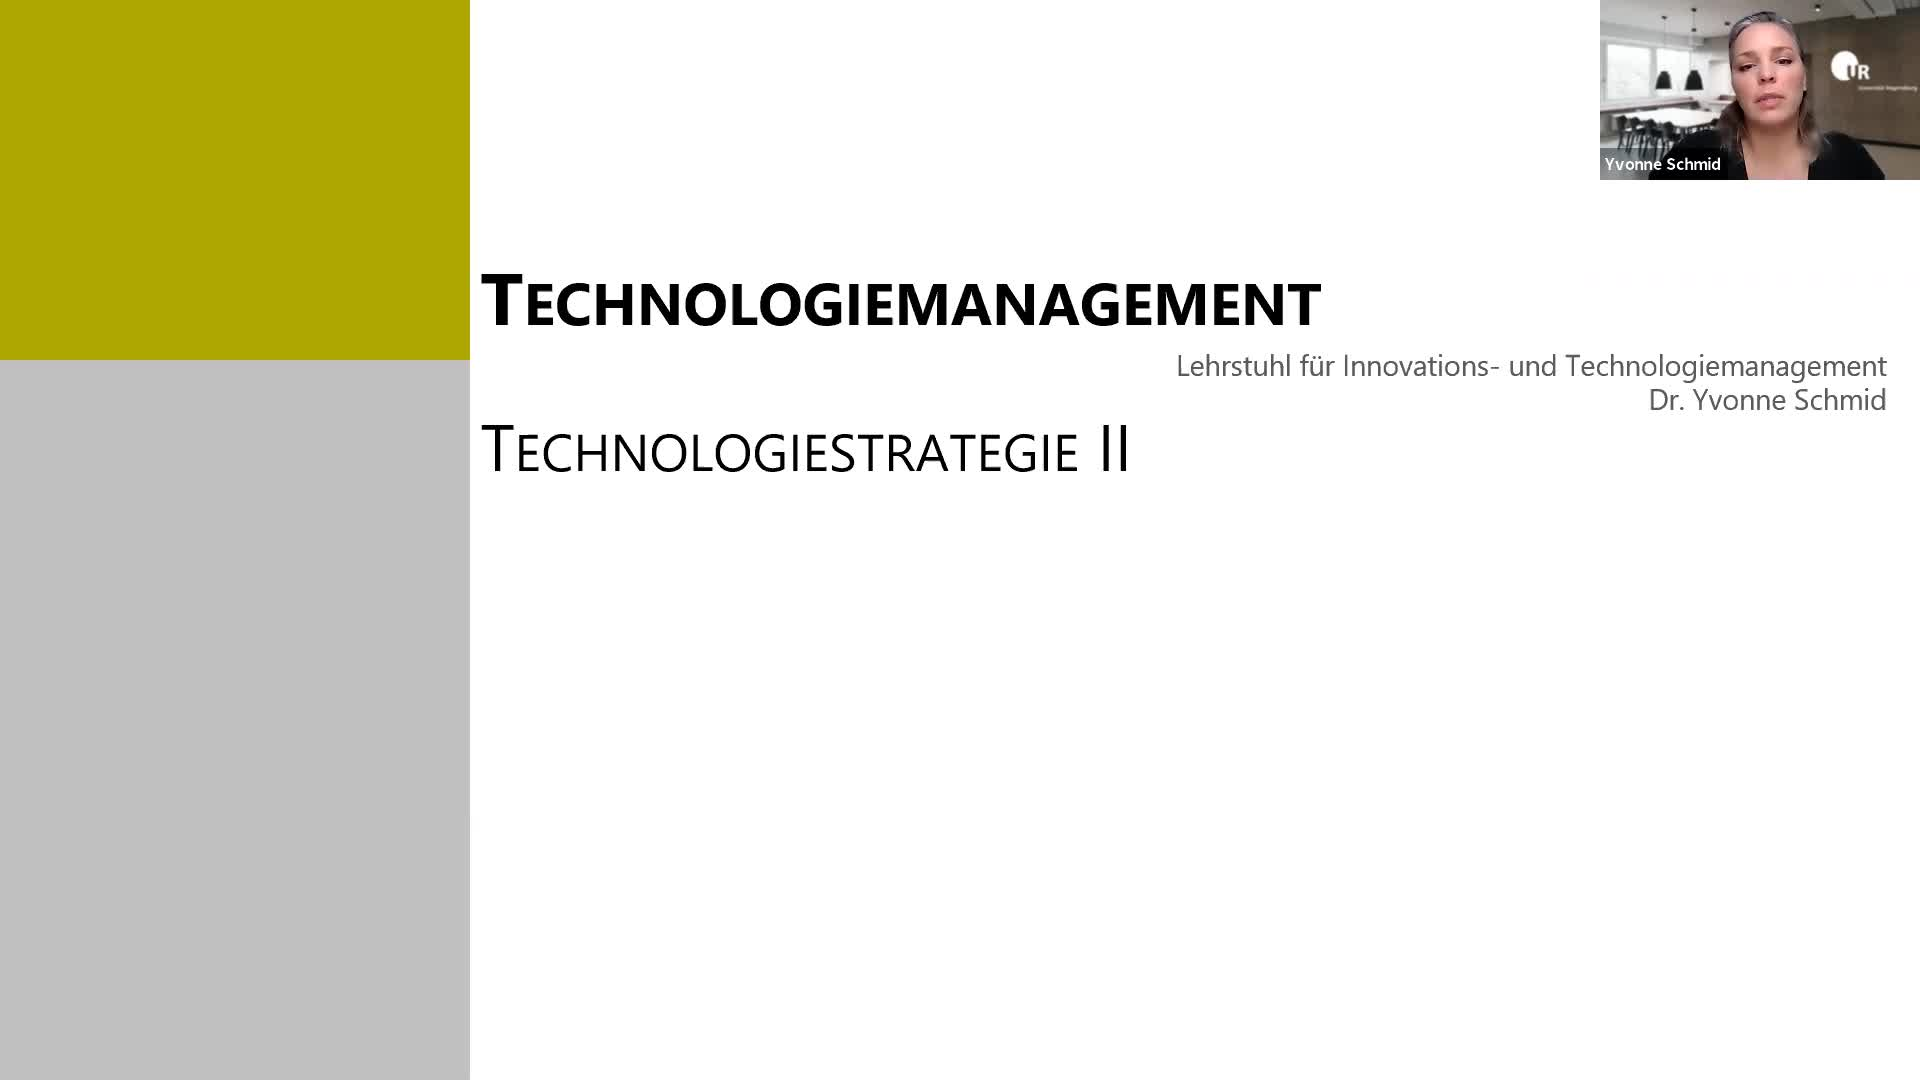 20210512_TM_Technologiestrategie II